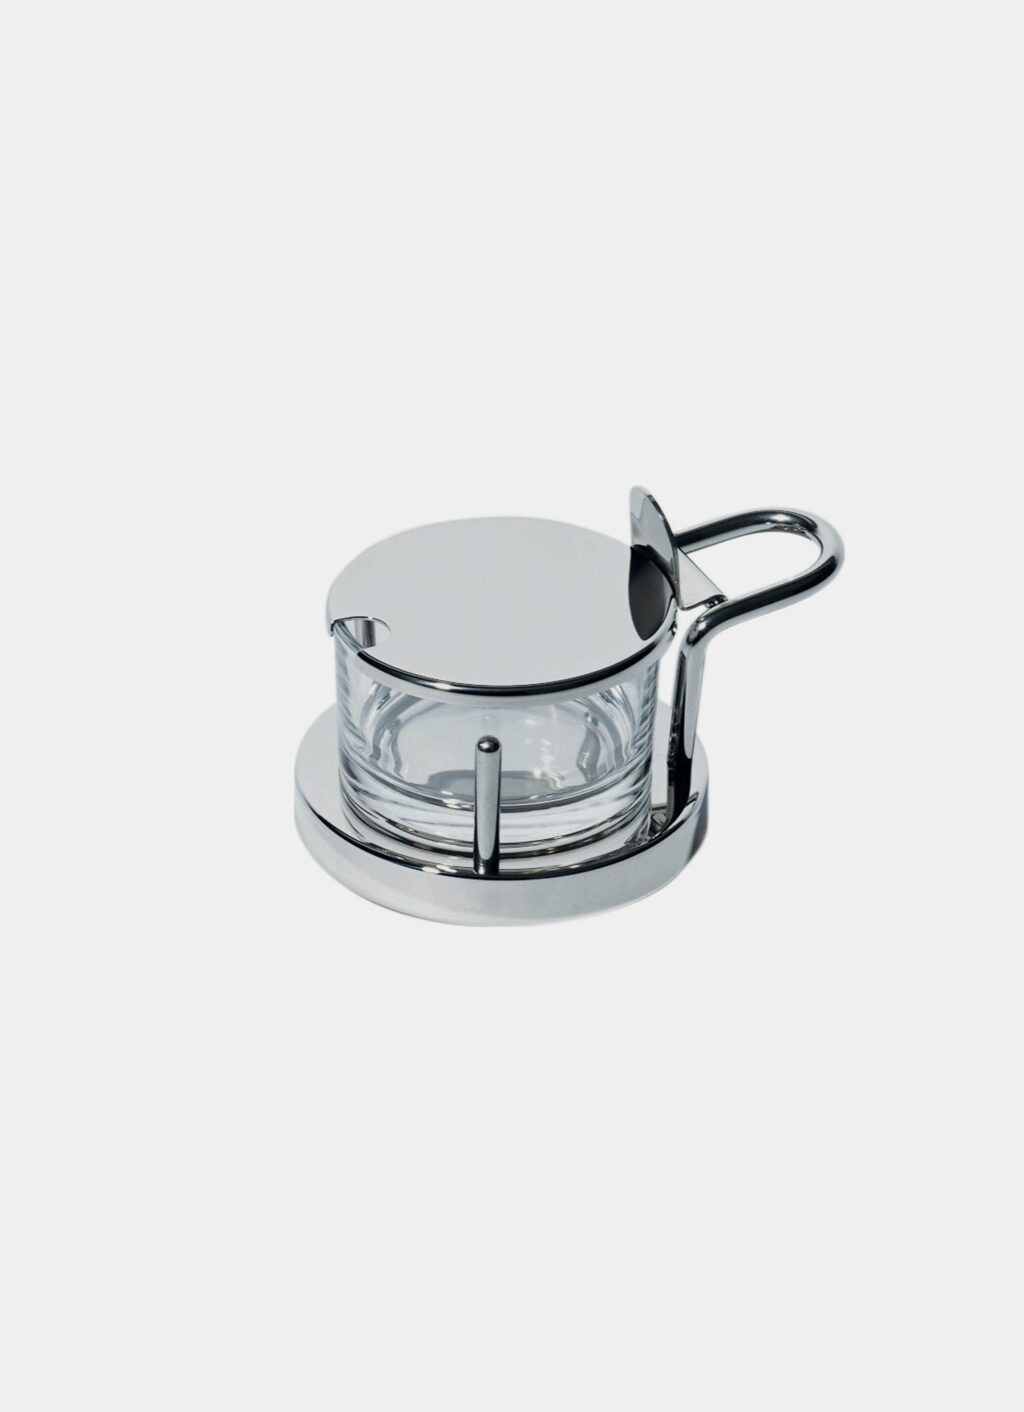 Alessi - 5071 - Ettore Sottsass - Parmesan Cheese Cellar